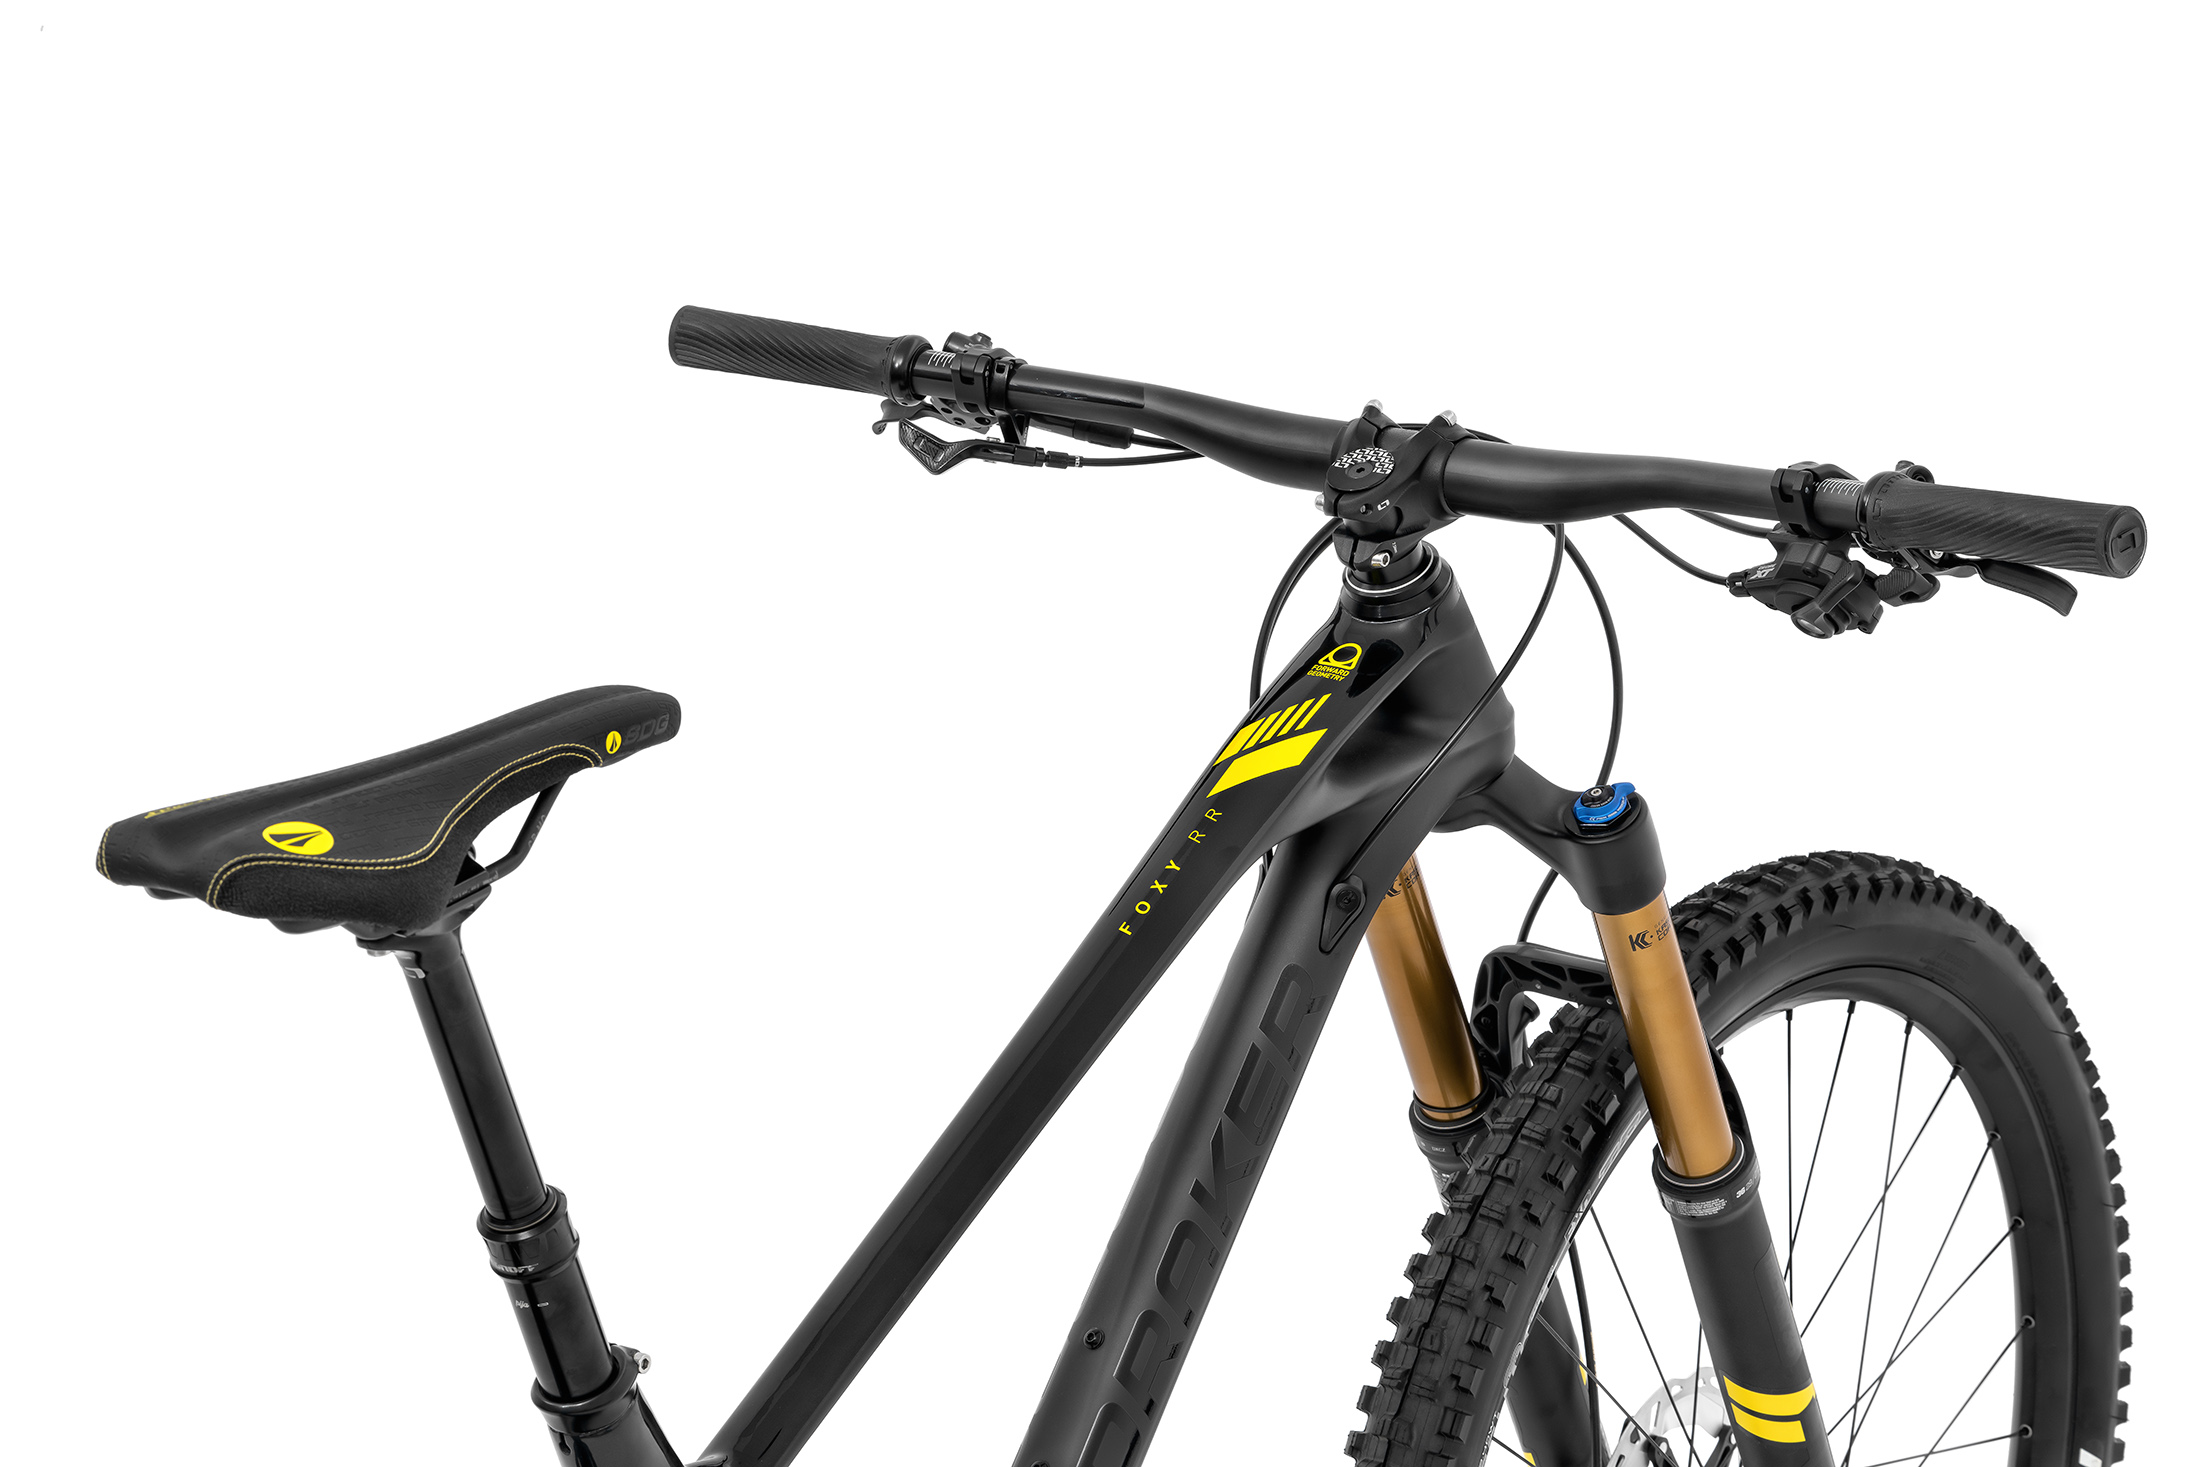 Foxy Carbon RR 29, black phantom/yellow, 2020